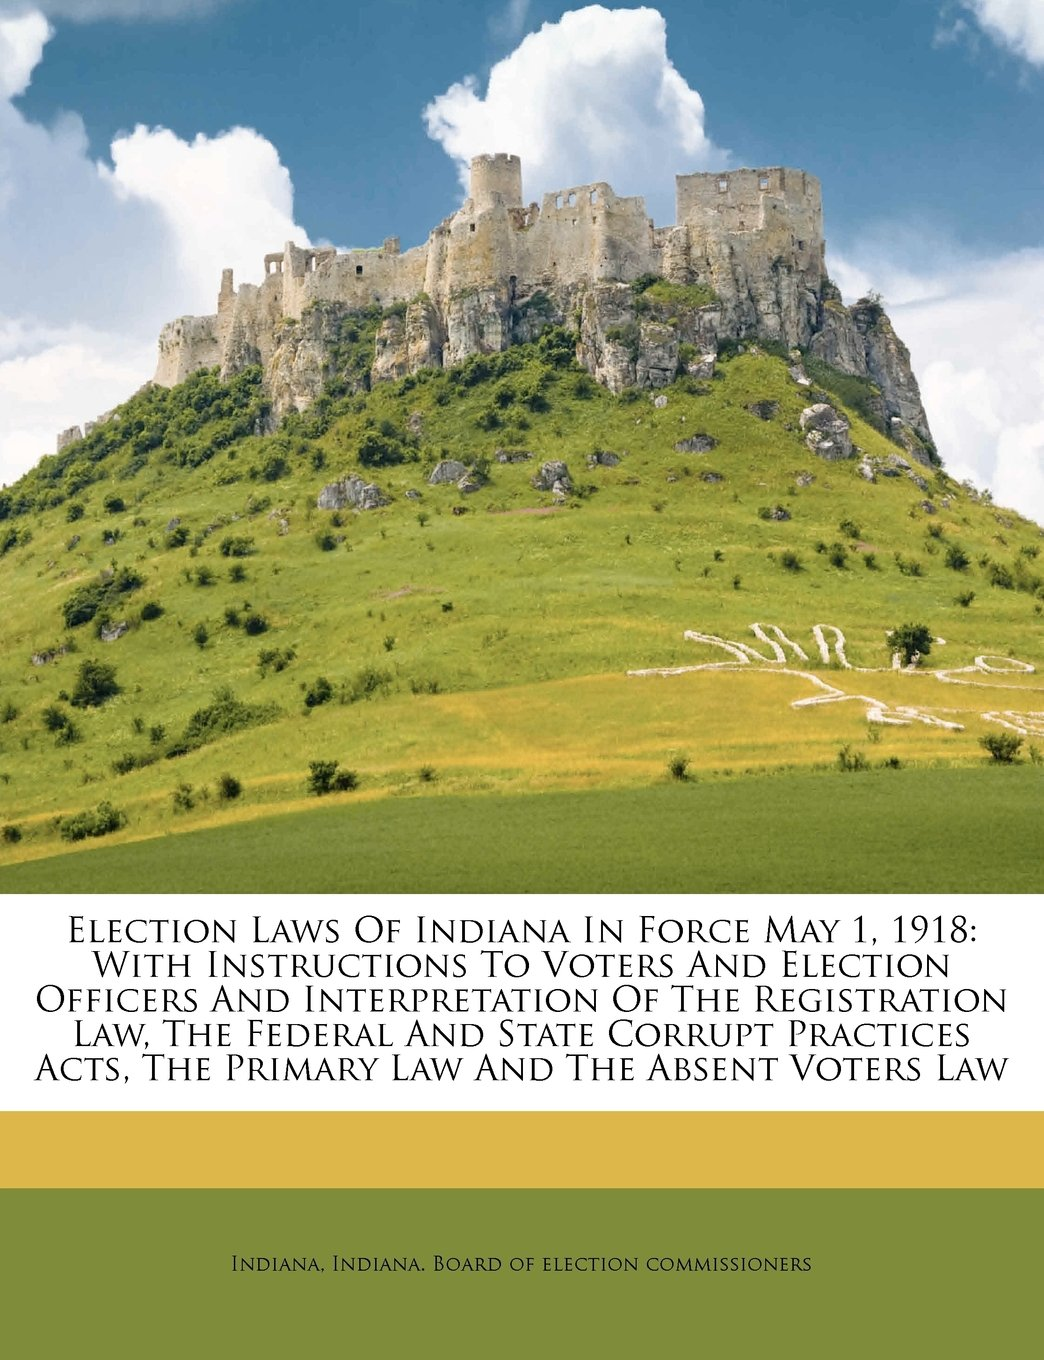 Election Laws Of Indiana In Force May 1, 1918: With Instructions To Voters And Election Officers And Interpretation Of The Registration Law, The ... The Primary Law And The Absent Voters Law pdf epub